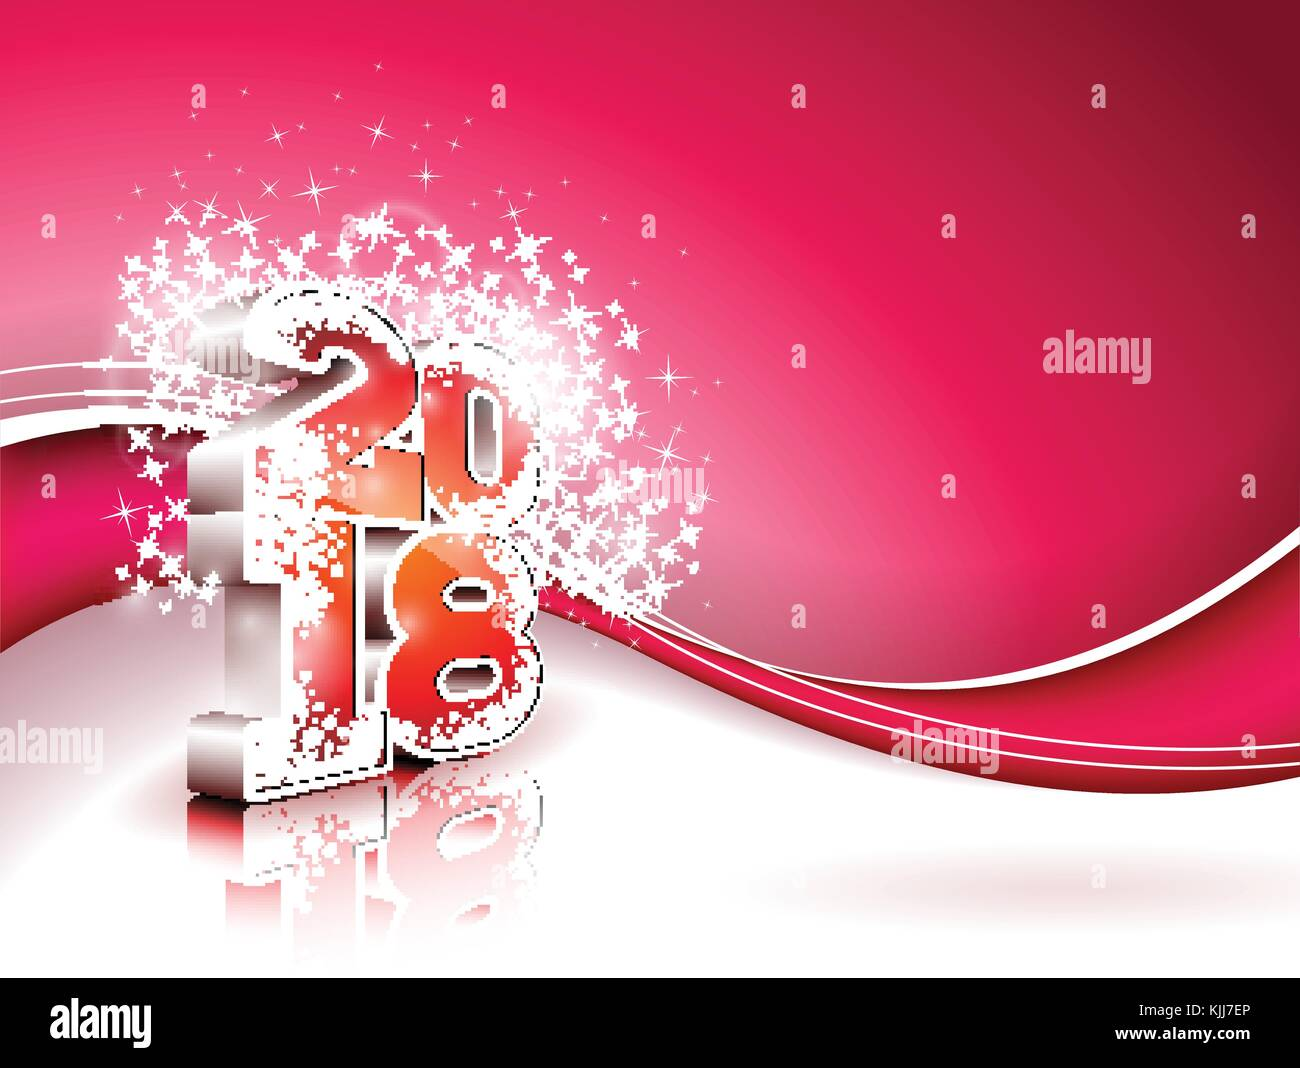 Vector Happy New Year 2018 Illustration on Shiny Red Background with 3d Number. Holiday Design for Premium Greeting Stock Vector